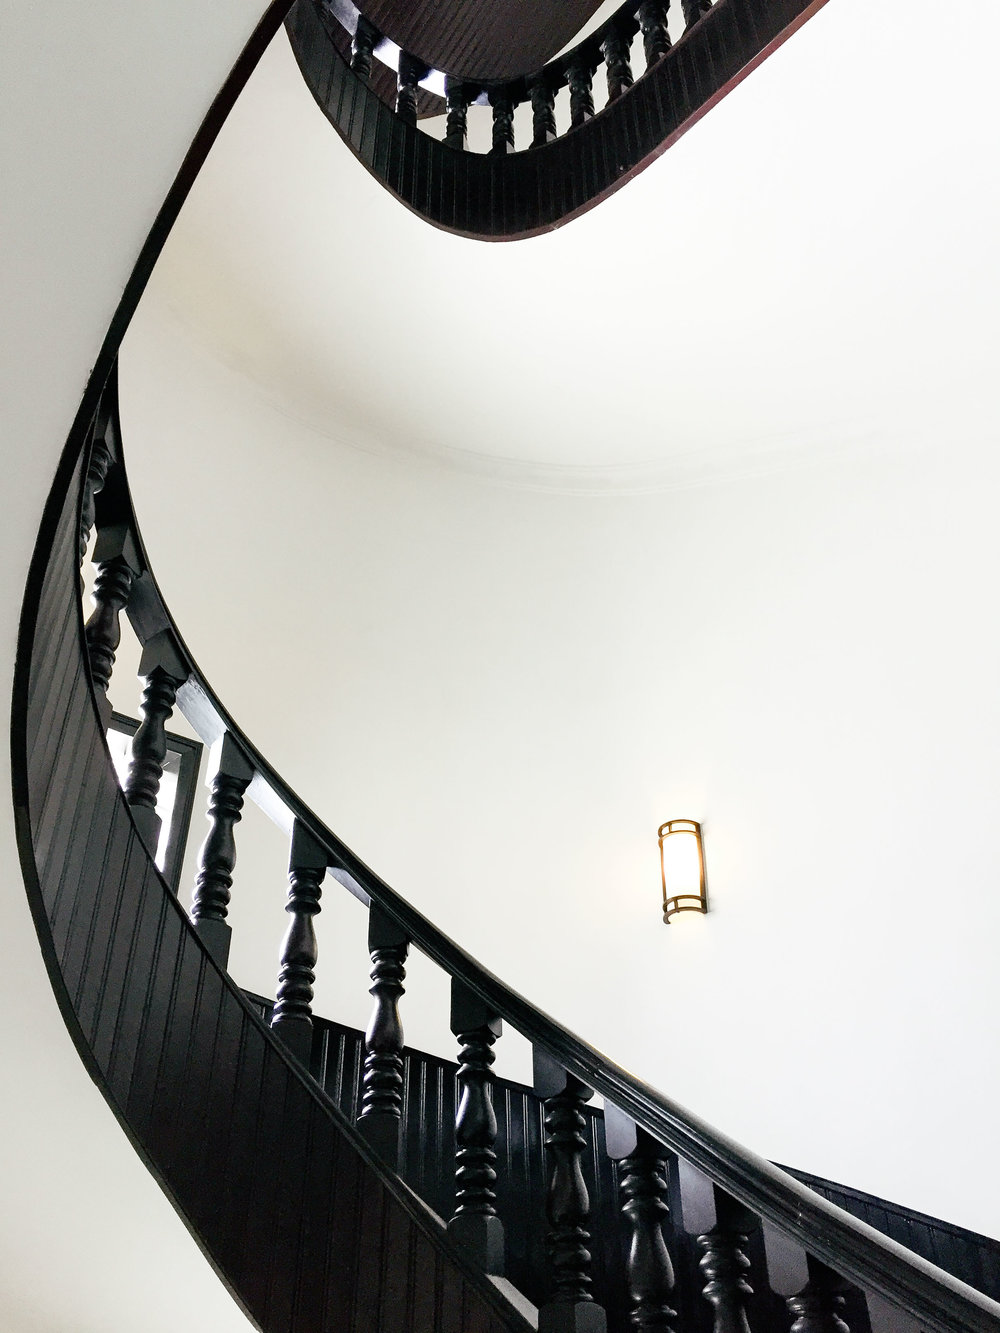 Spiral staircase with clean aesthetics